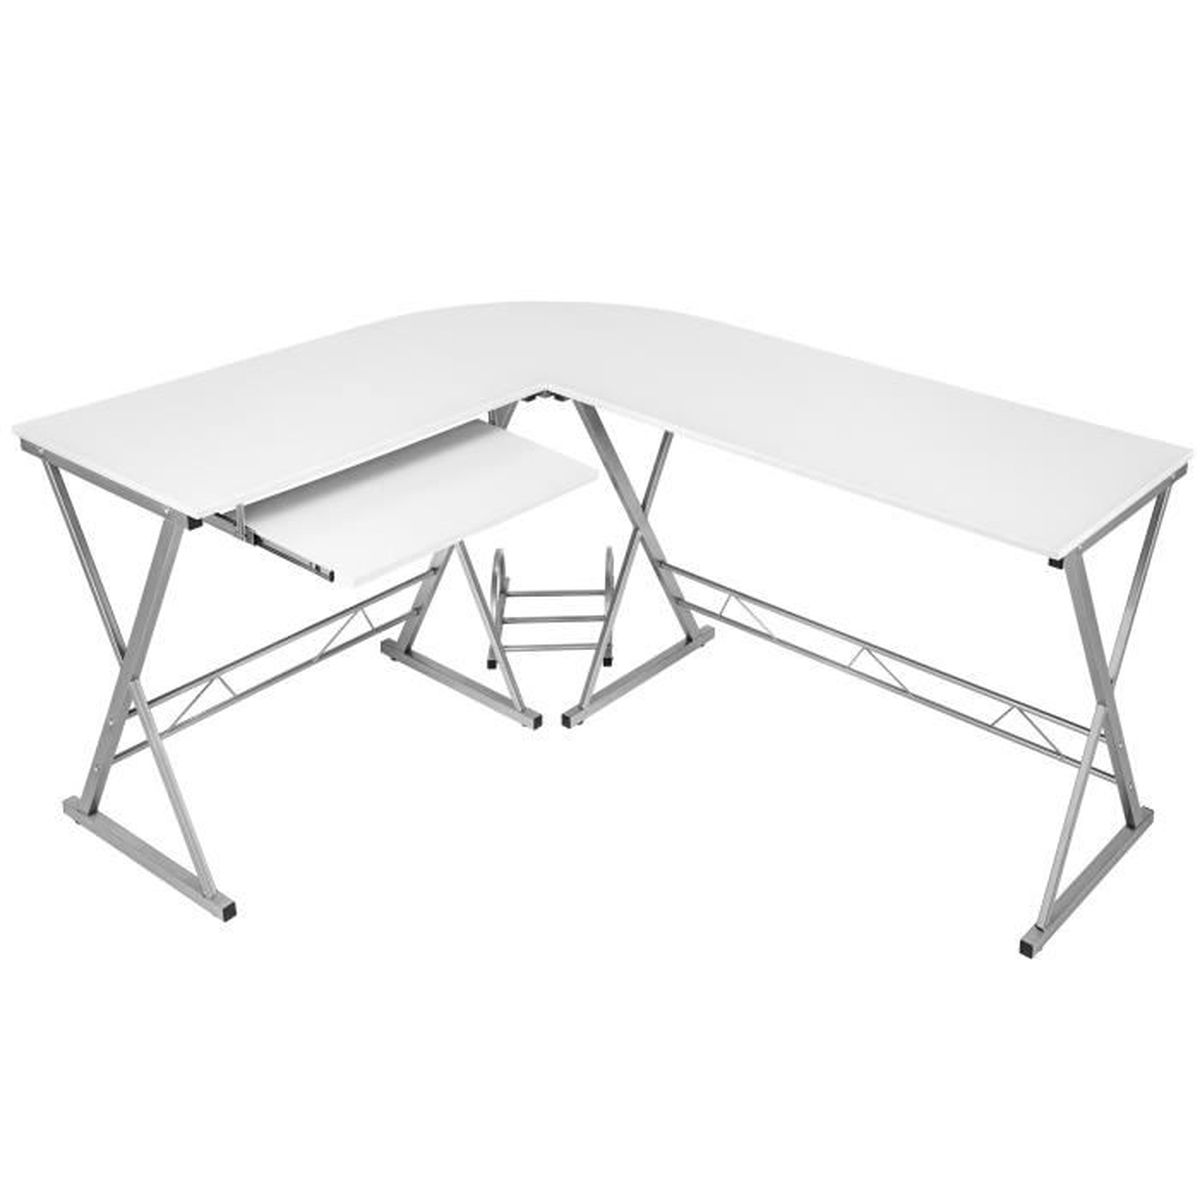 Bureau informatique multim dia meuble de bureau table d ordinateur d angle 1 tablette 170 cm - Meuble informatique d angle ...